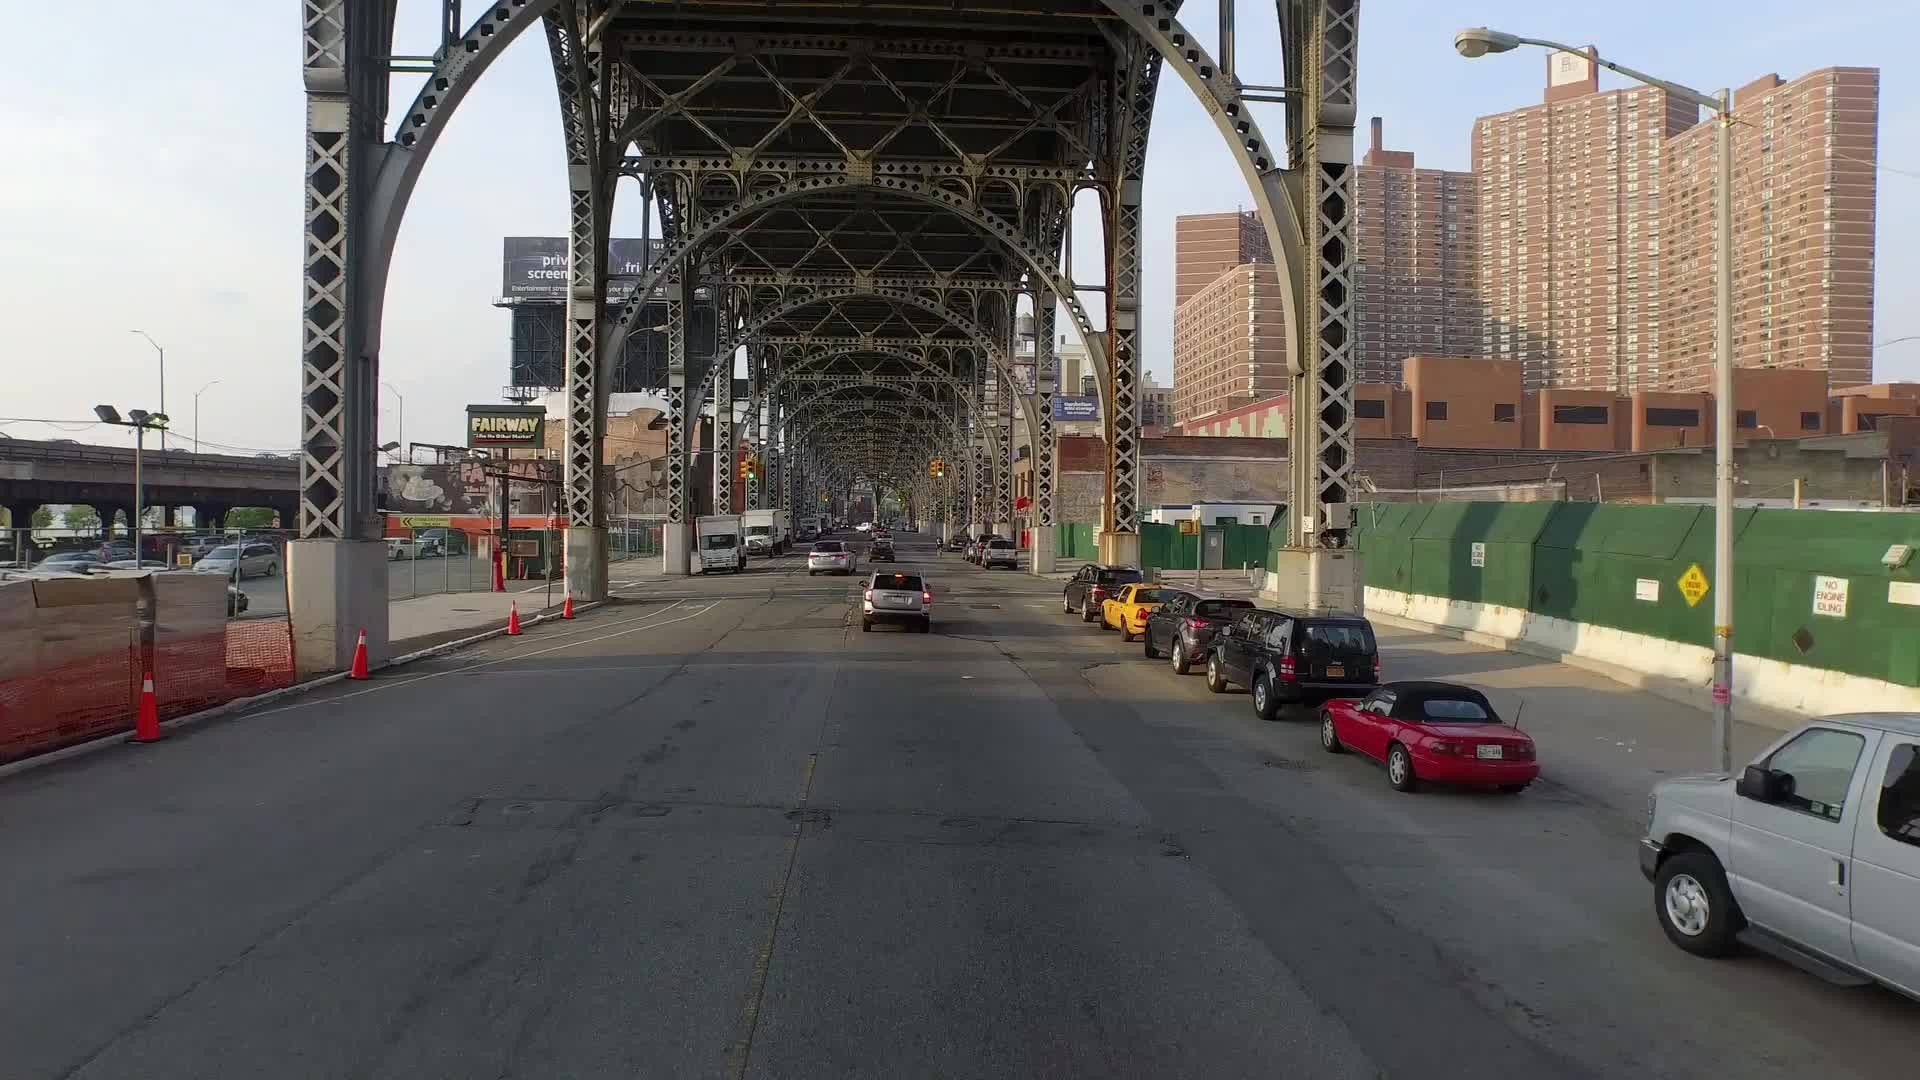 moving underneath elevated subway track on 125th st in Harlem NYC